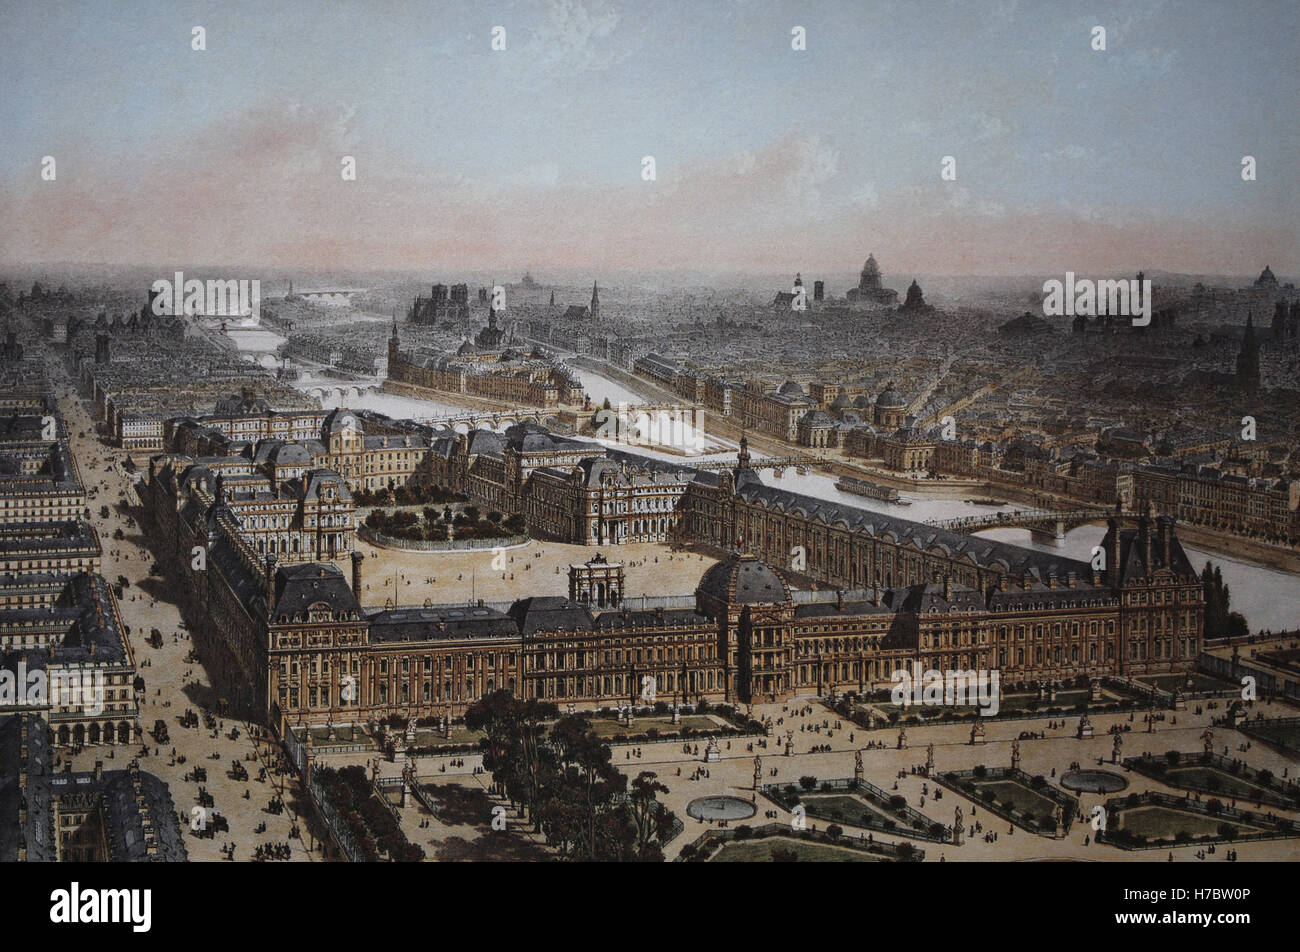 Louvre Engraving High Resolution Stock Photography And Images Alamy